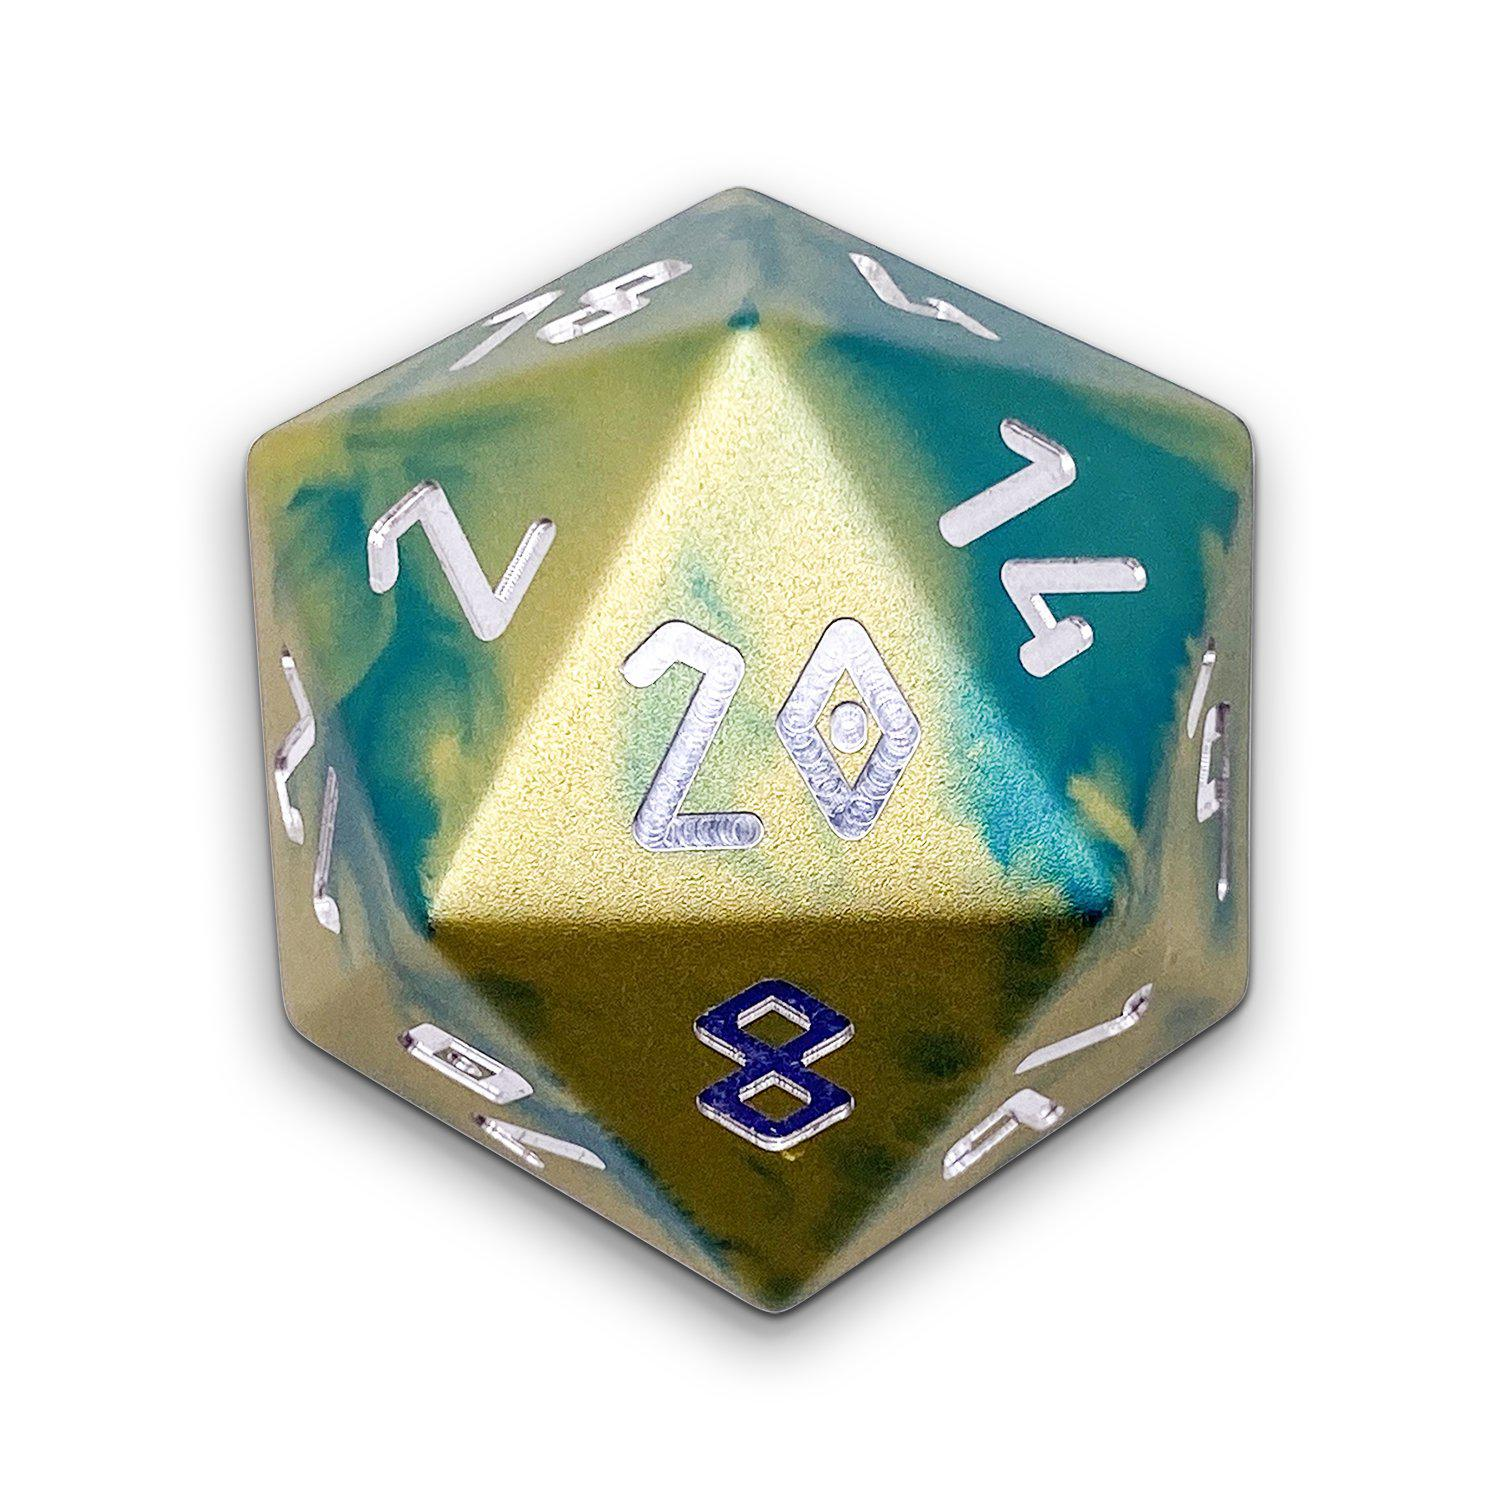 Nautical Demise - Wondrous Boulder® 55mm D20 6063 Aircraft Grade Aluminum Metal Die